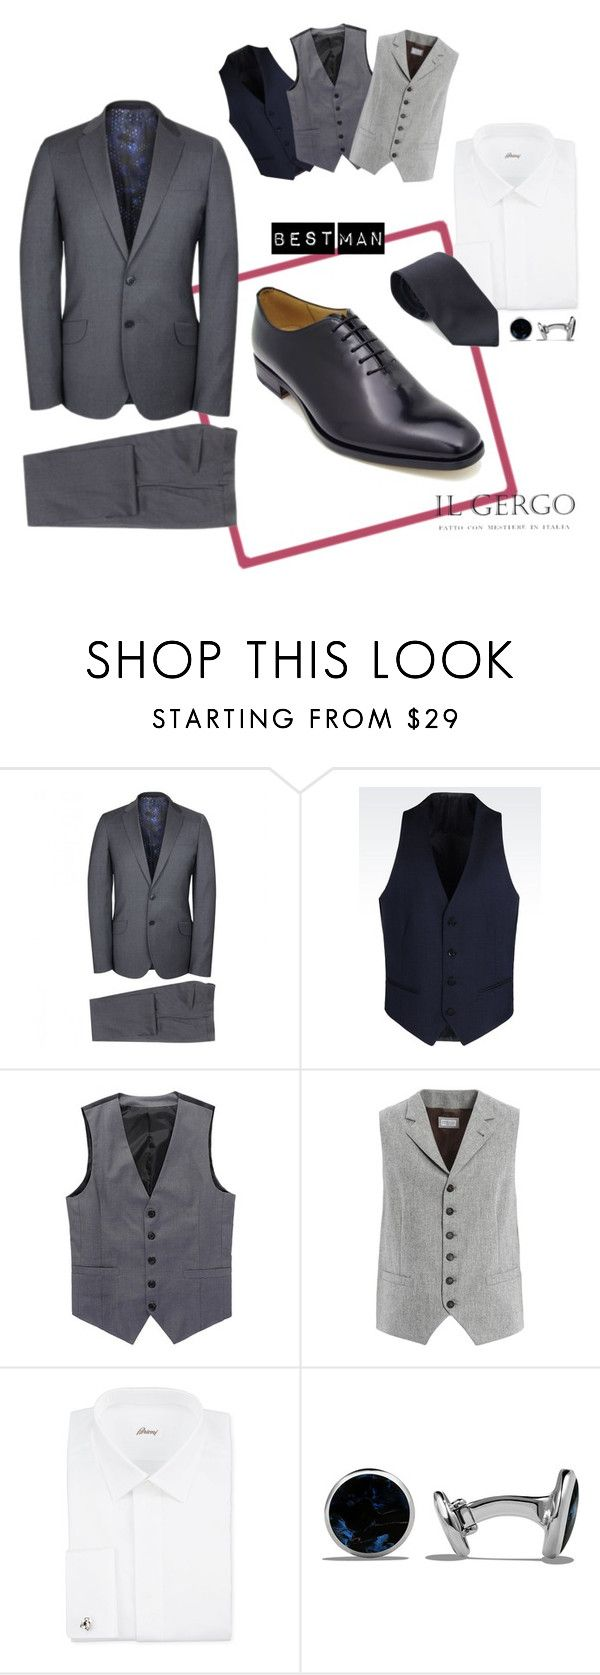 """Best man suit Il Gergo"" by paolo-rossi on Polyvore featuring Paul Smith, Armani Collezioni, Brunello Cucinelli, Brioni, David Yurman, men's fashion e menswear"